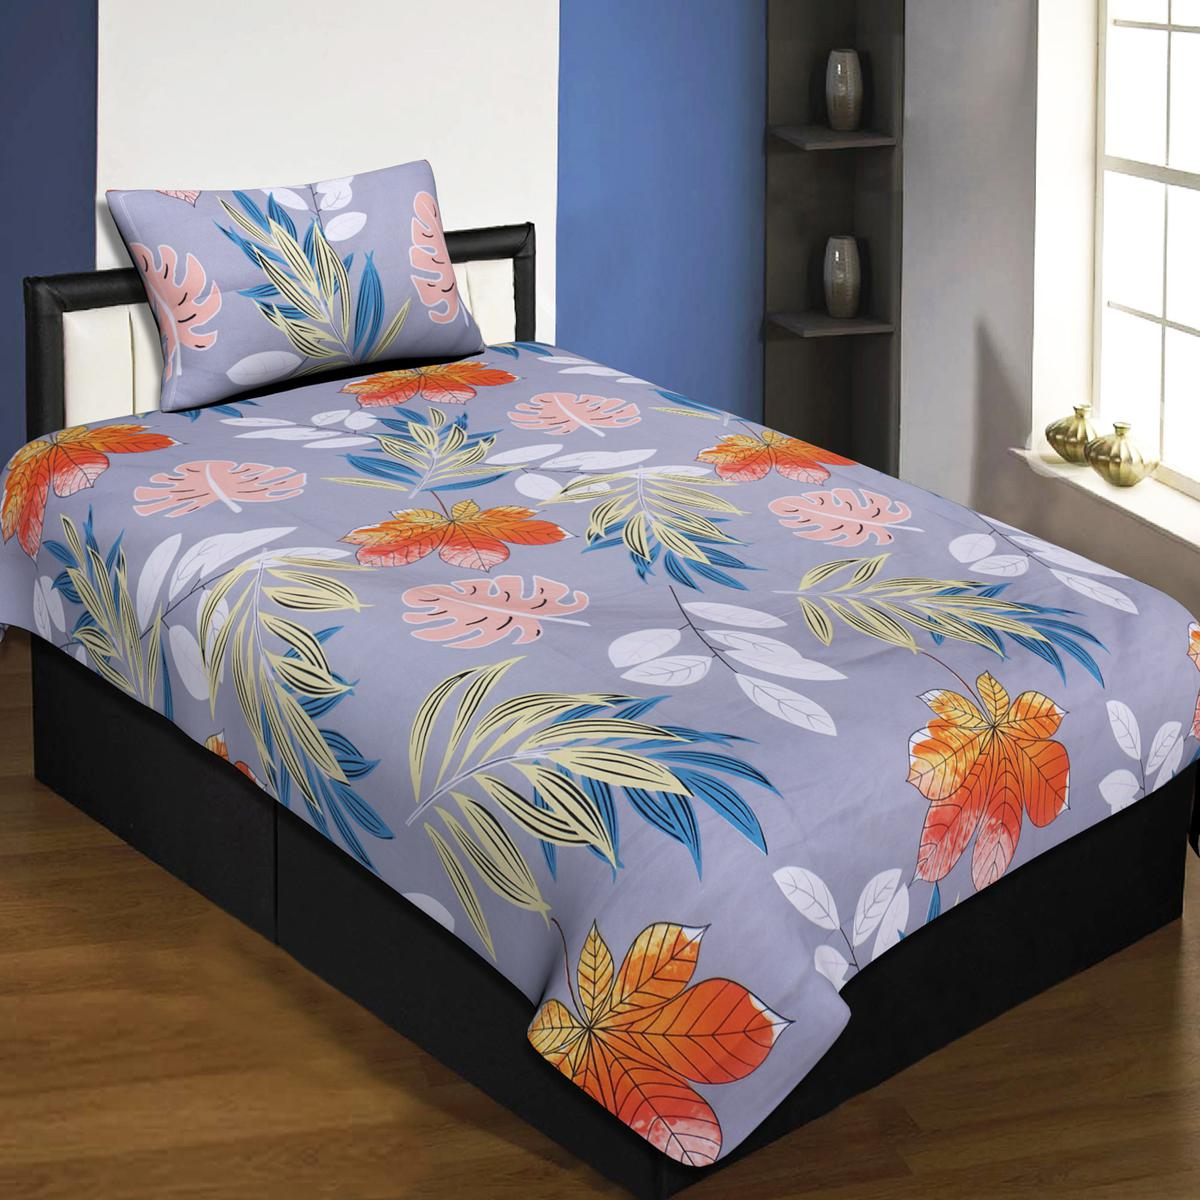 Jaipur Fabric Light Grey Colored Single Bedsheet With 1 Pillow Cover